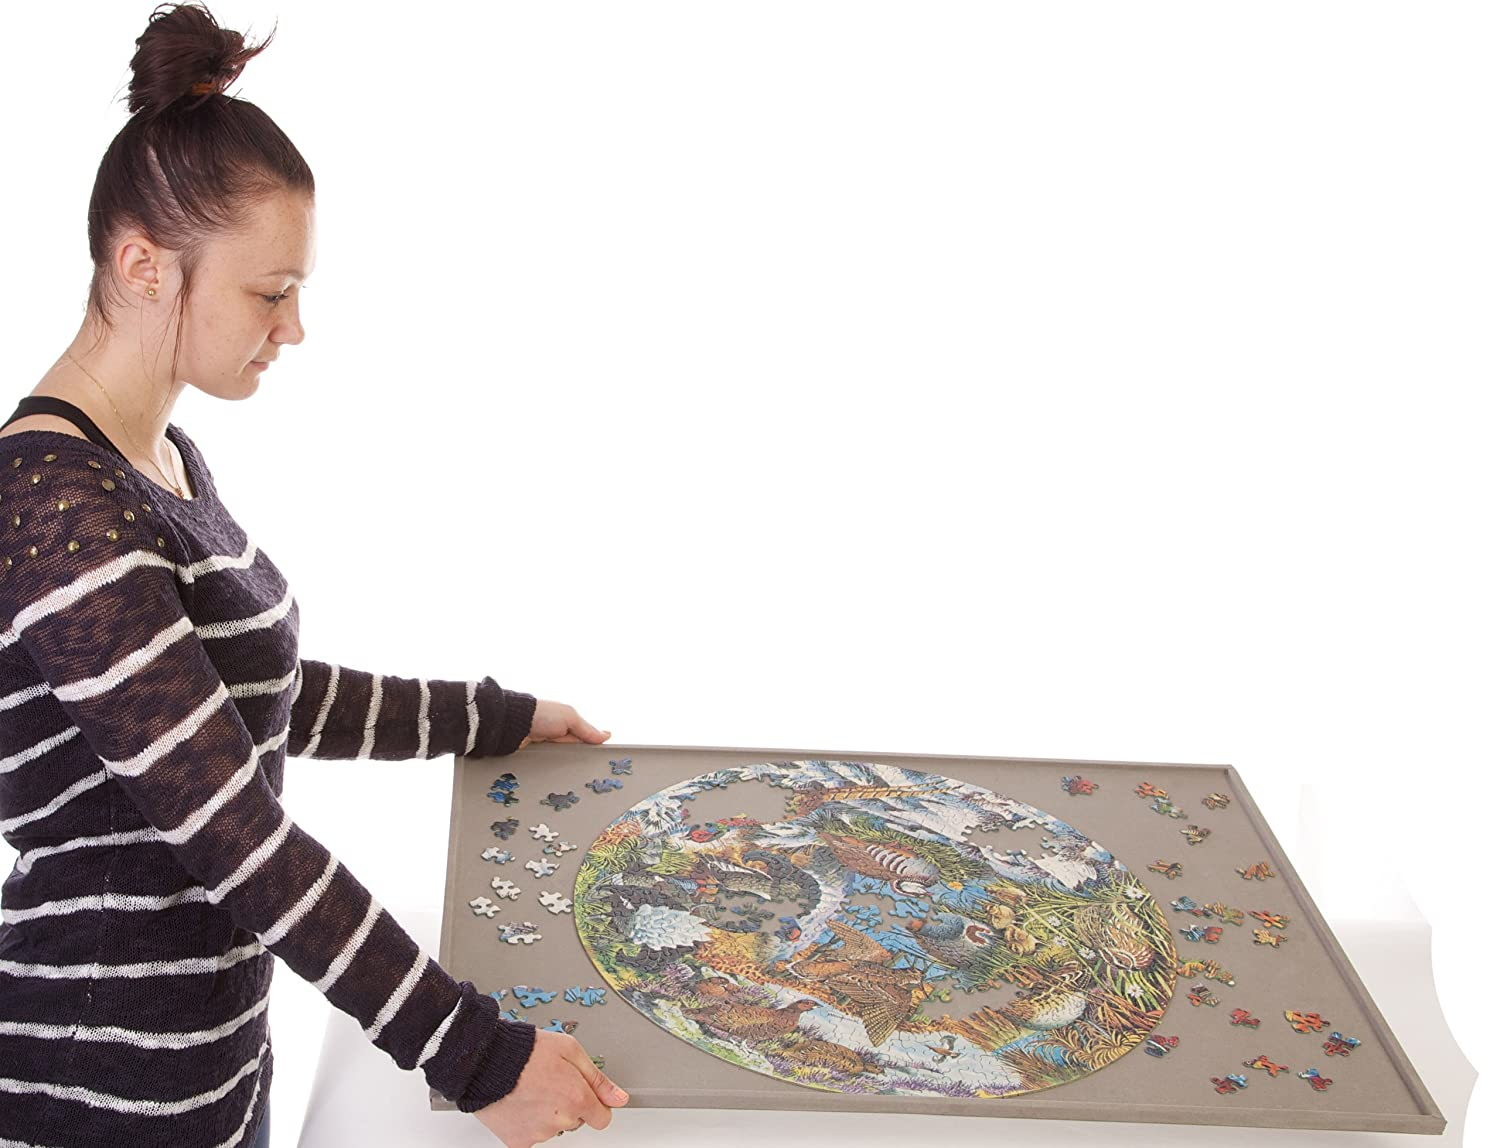 Jigsaw puzzle board for up to 1,000 pieces from Jigthings Limited JIG005 Jigthings JIGBOARD 1000